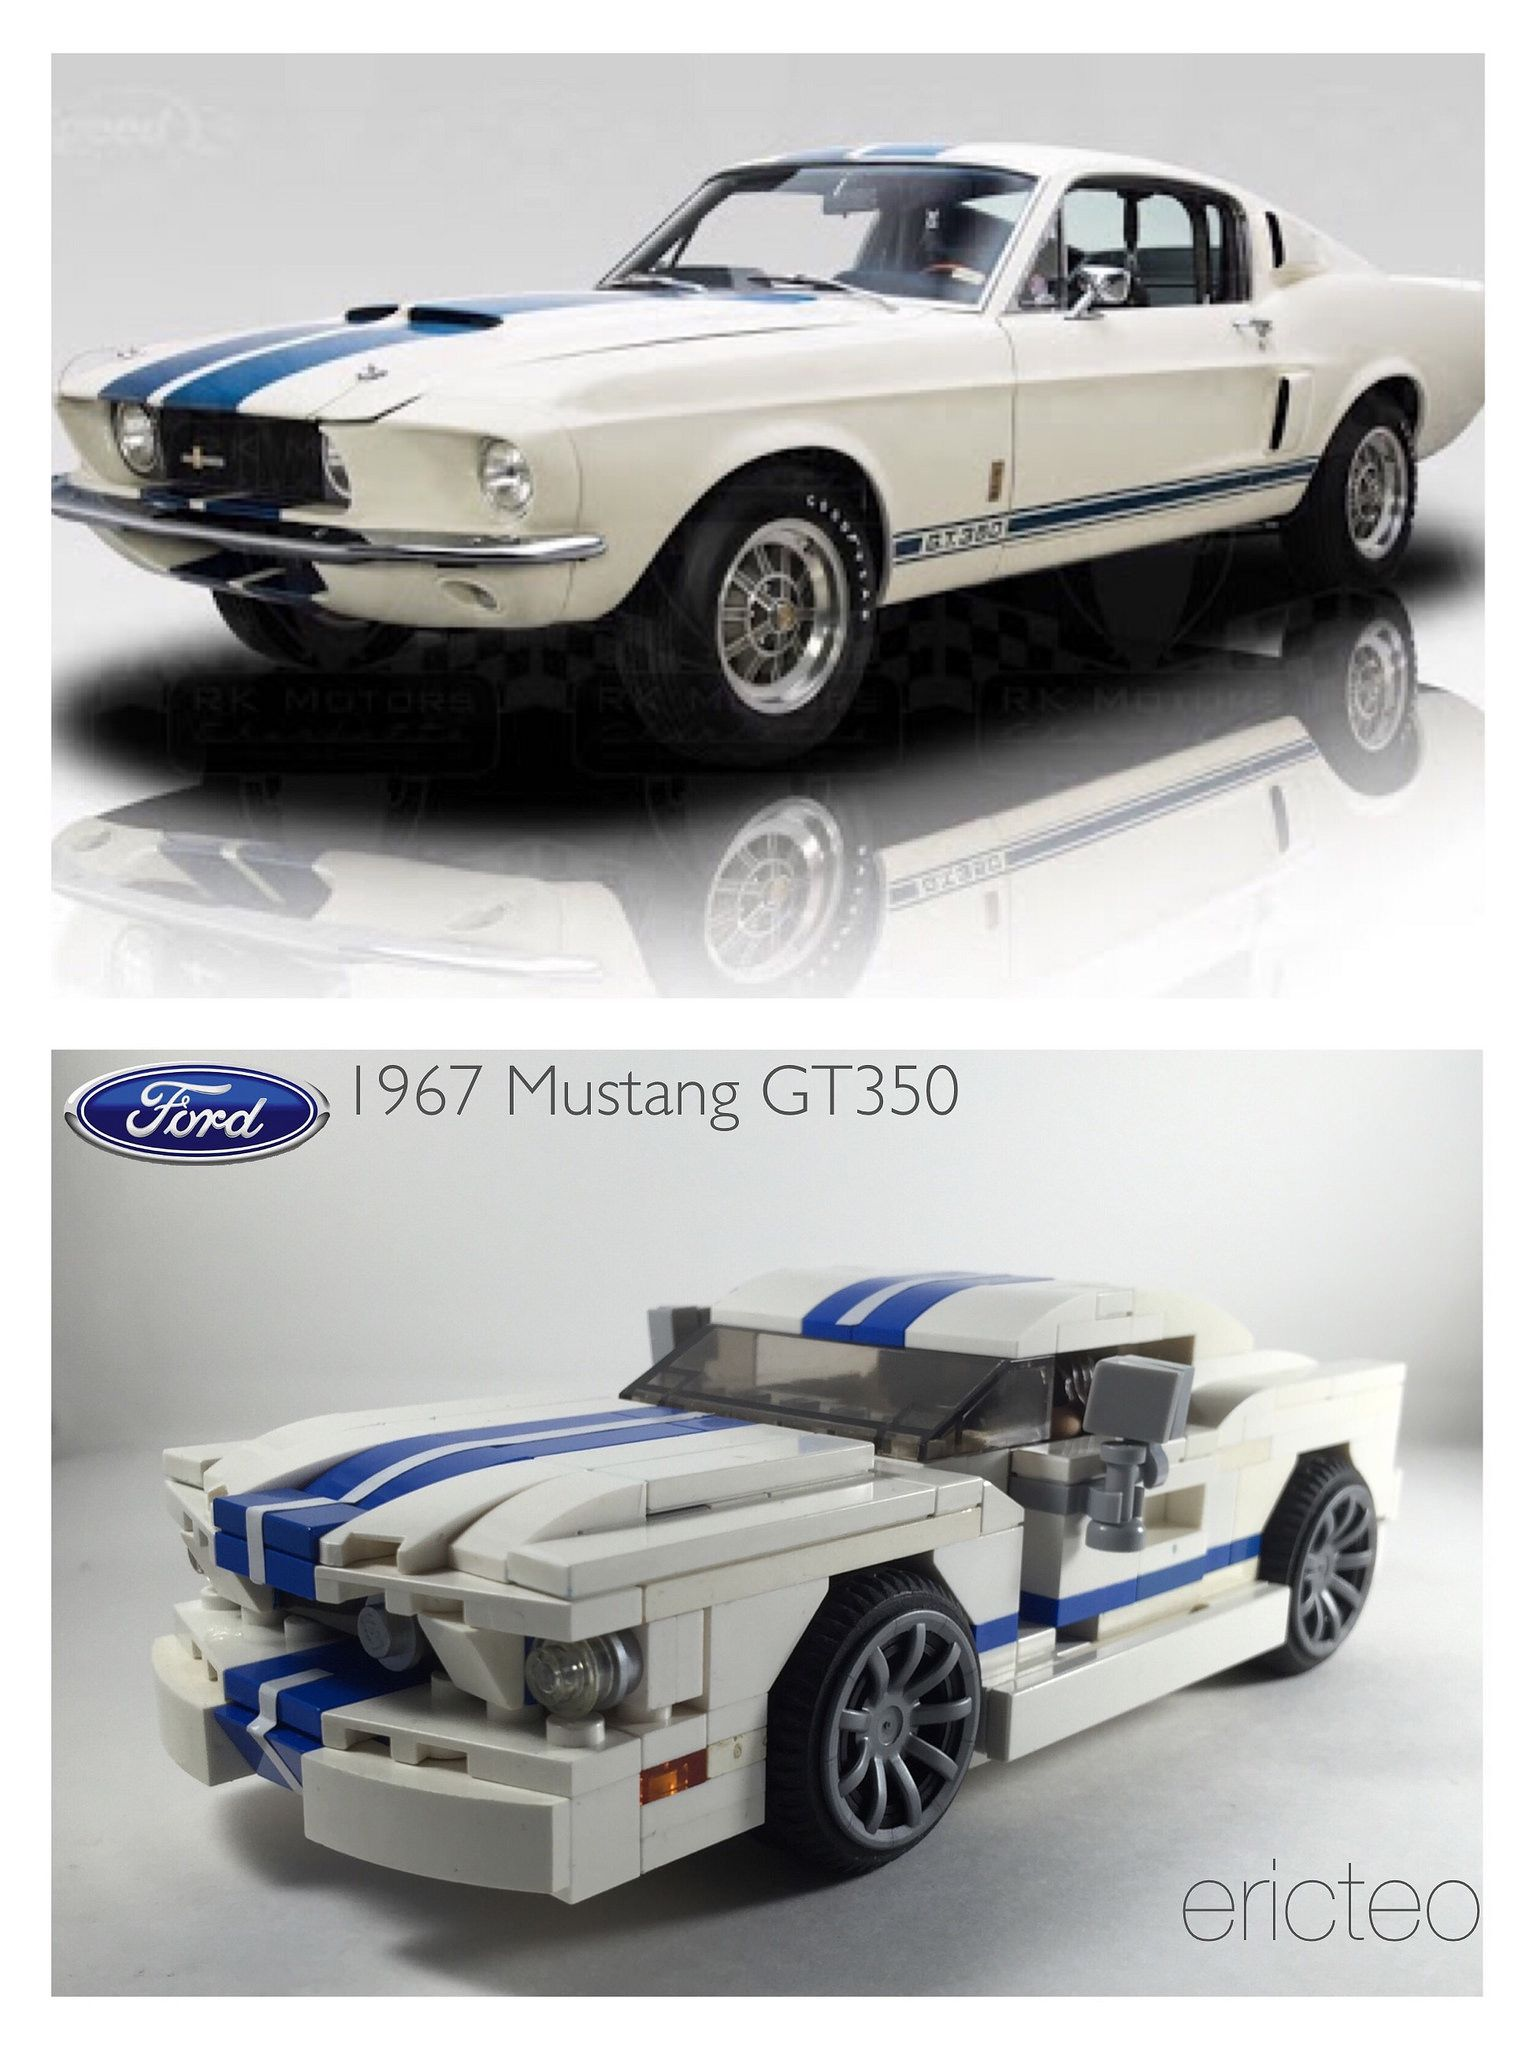 1967 Ford Mustang GT350 a modified version of my mustang builds